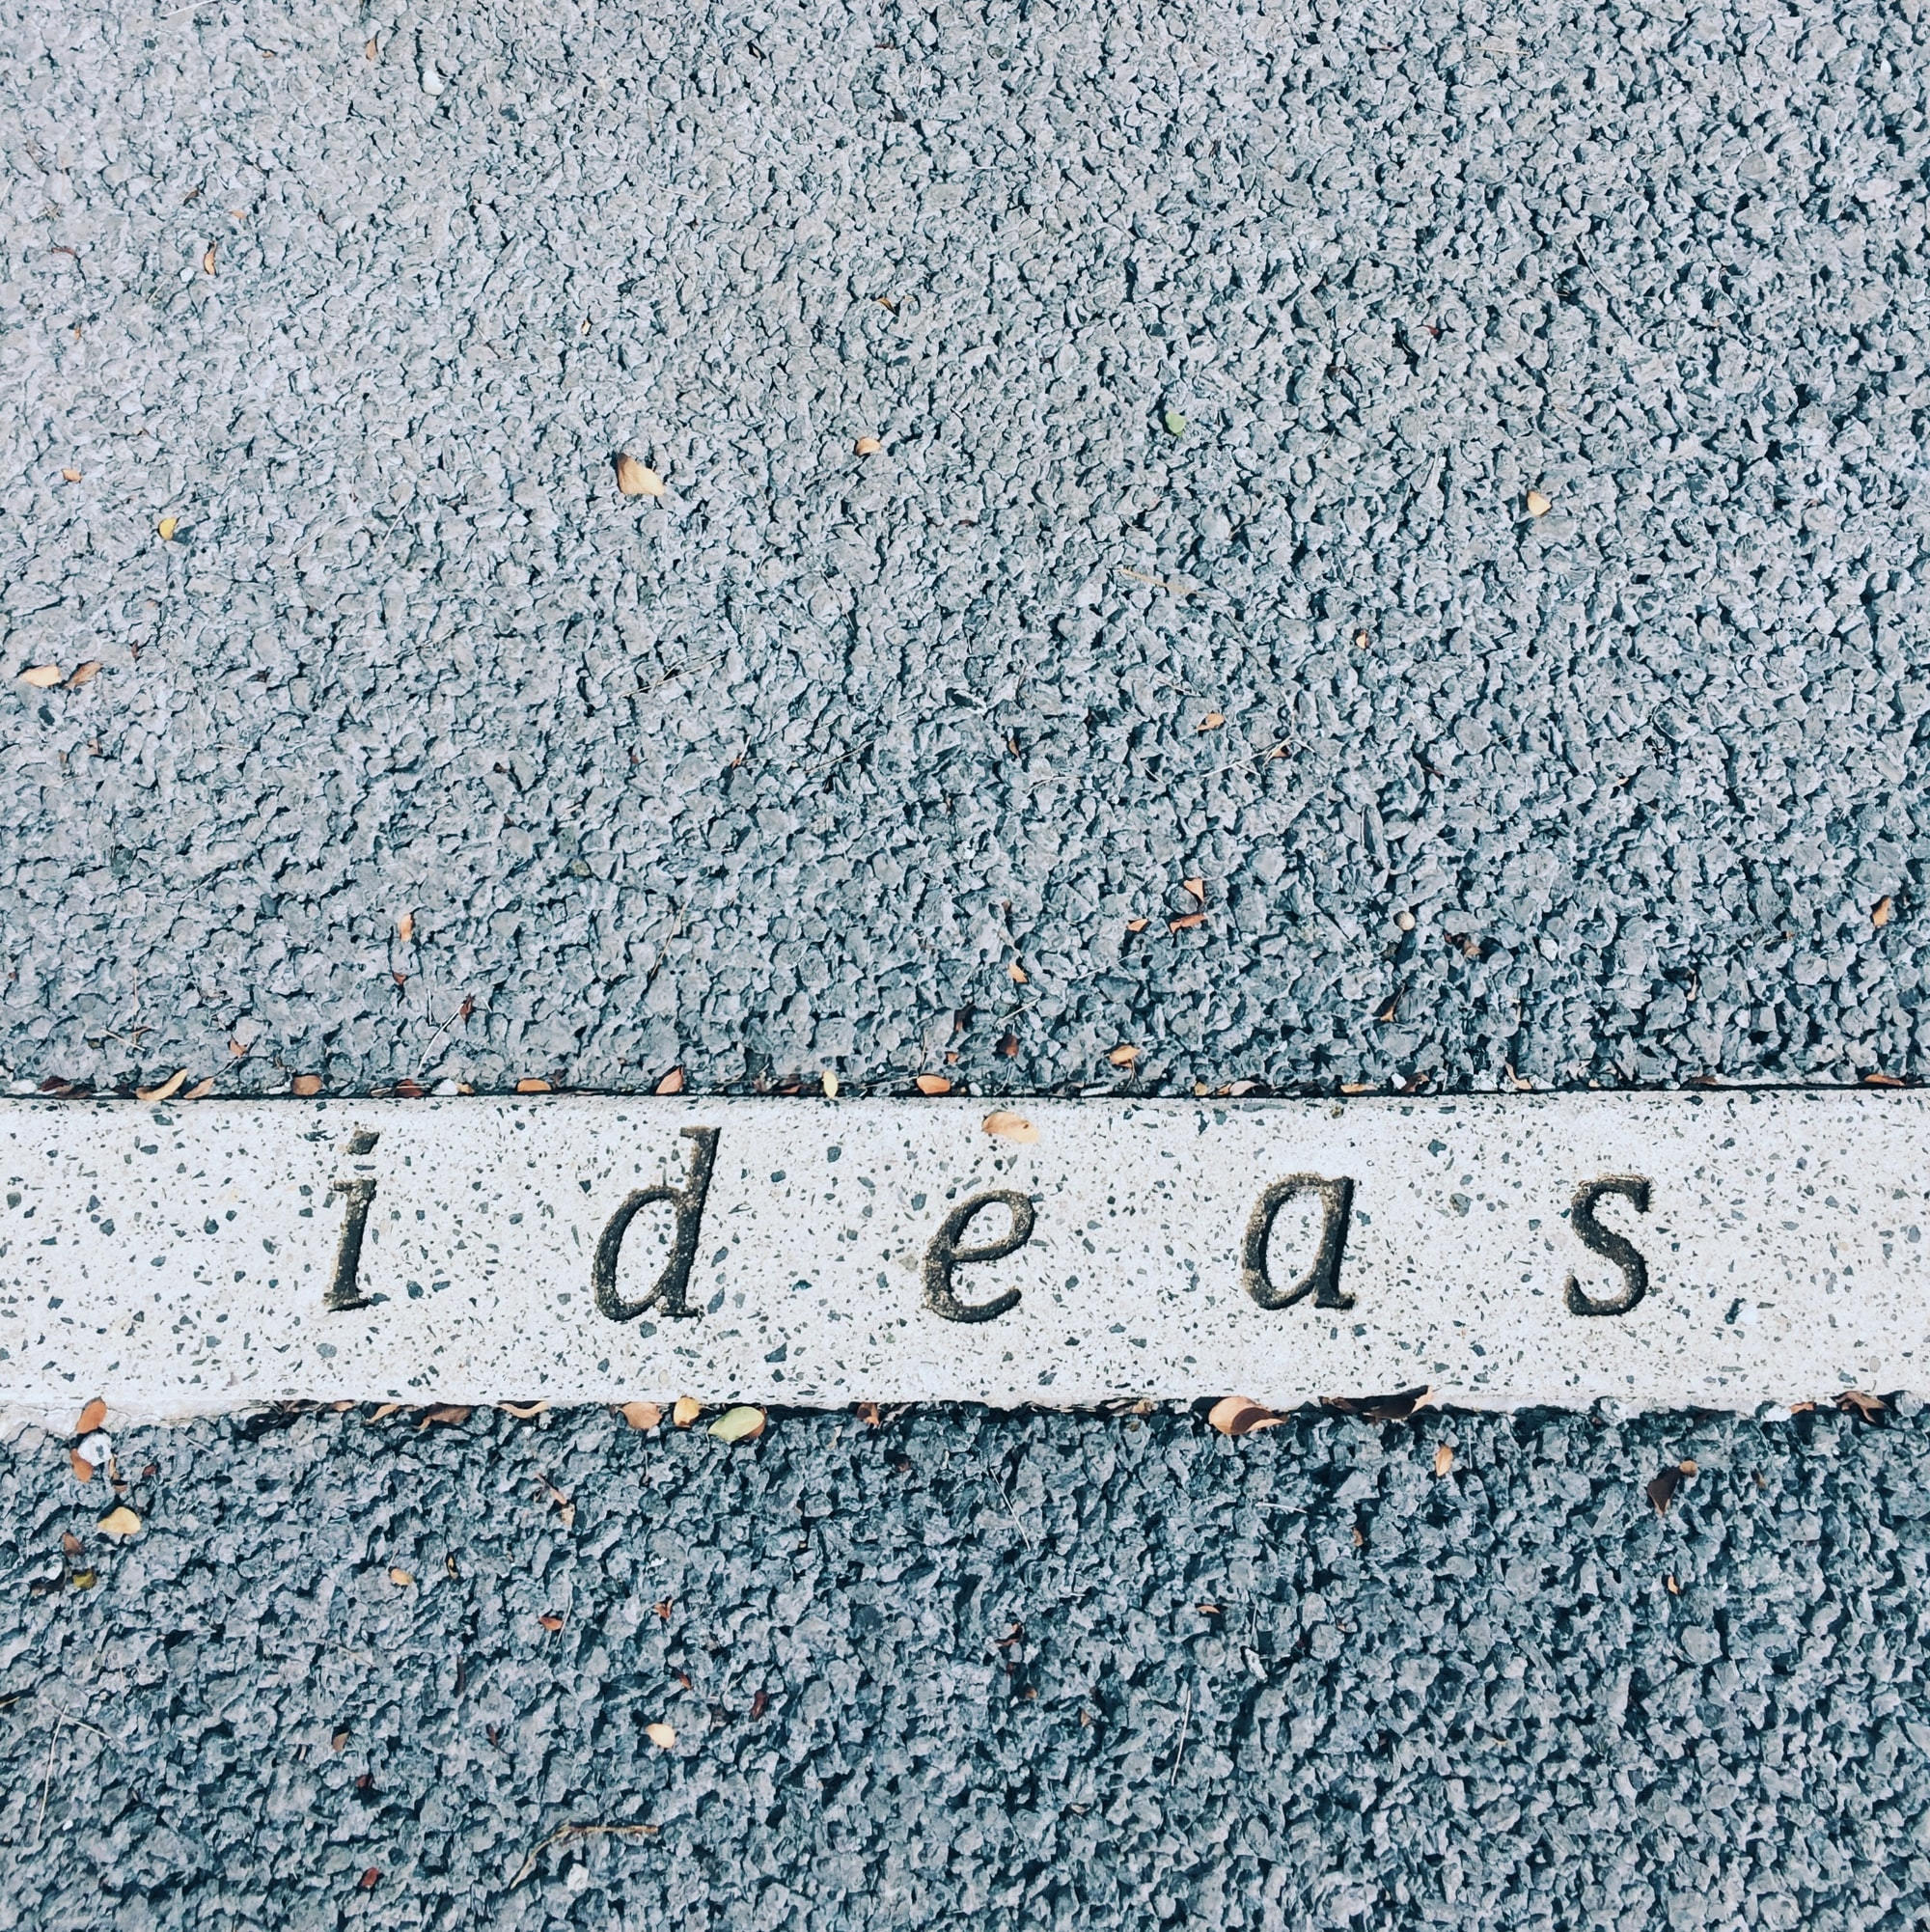 How to think about ideas?